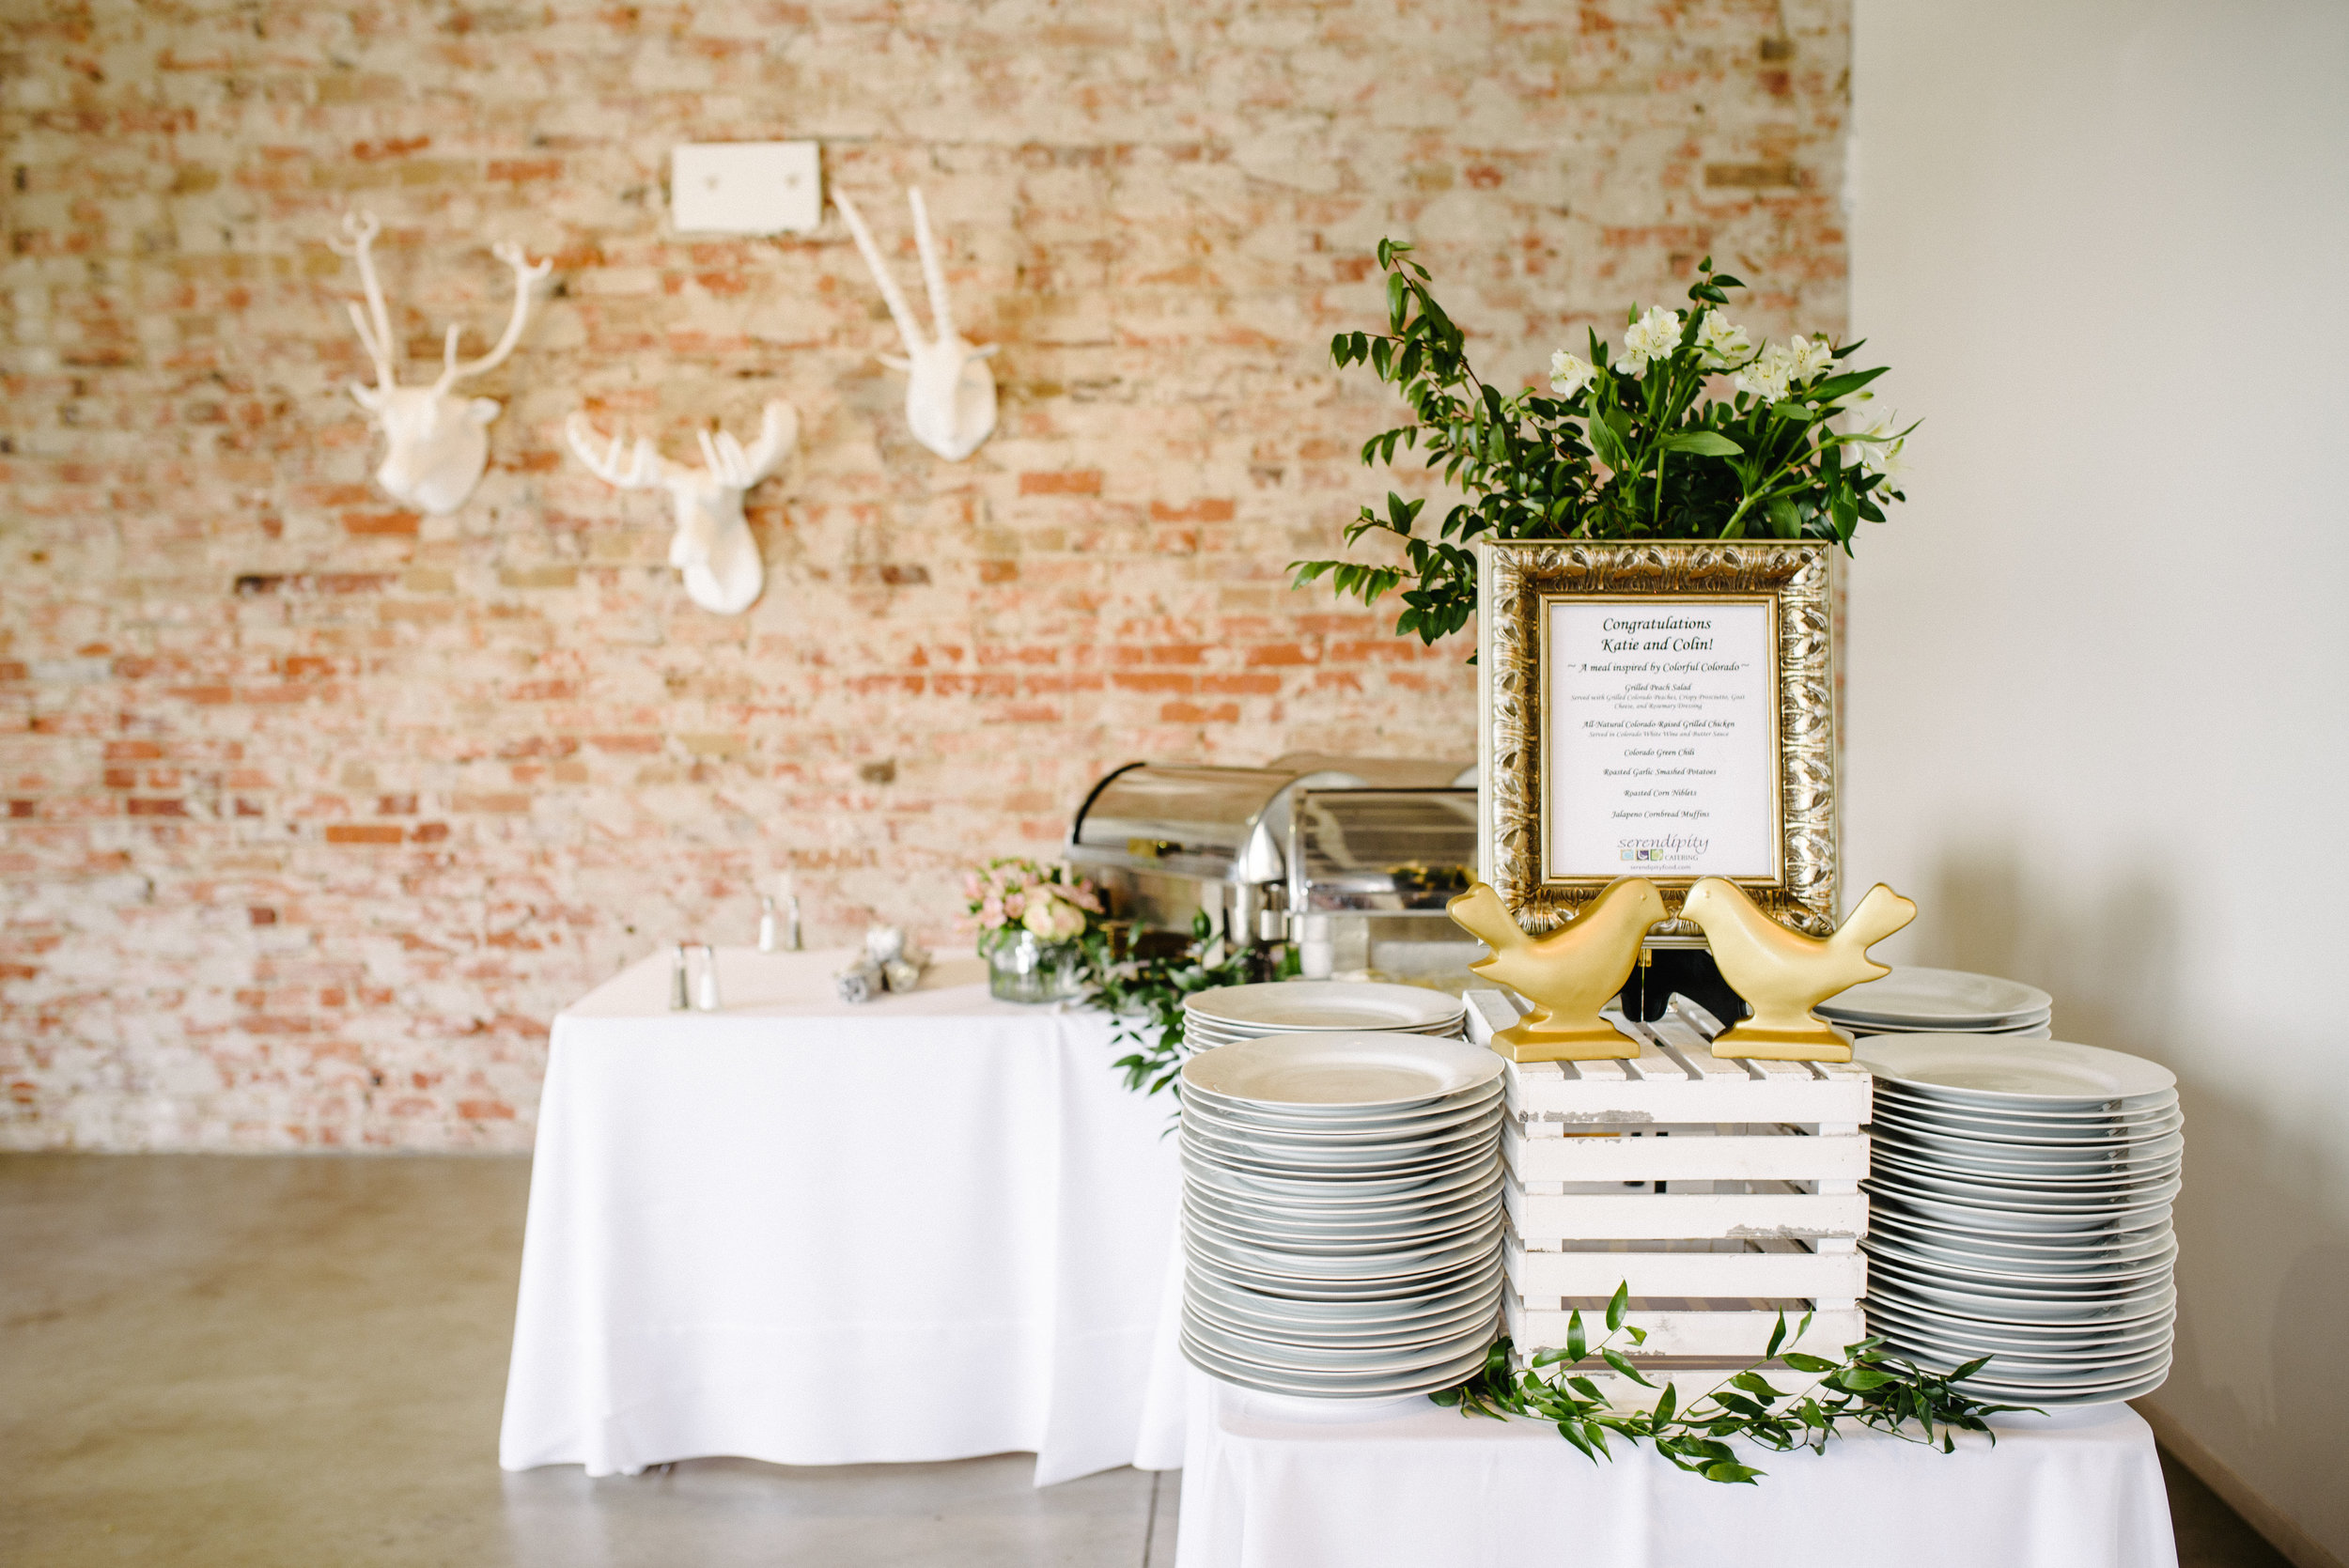 Vendor List: Planner + designer:  Taylor  | Hotel:  The Brown Palace  | Photographer:  Ryan Dearth Photography  | Dress:   Priscilla of Boston   | Venue:  blanc  | Florals: DIY / Costco | Caterer:  Serendipity  | Officiant: family friend | Bar:  Peak Beverage  | Speakers / sound:  Denver Premier Rentals